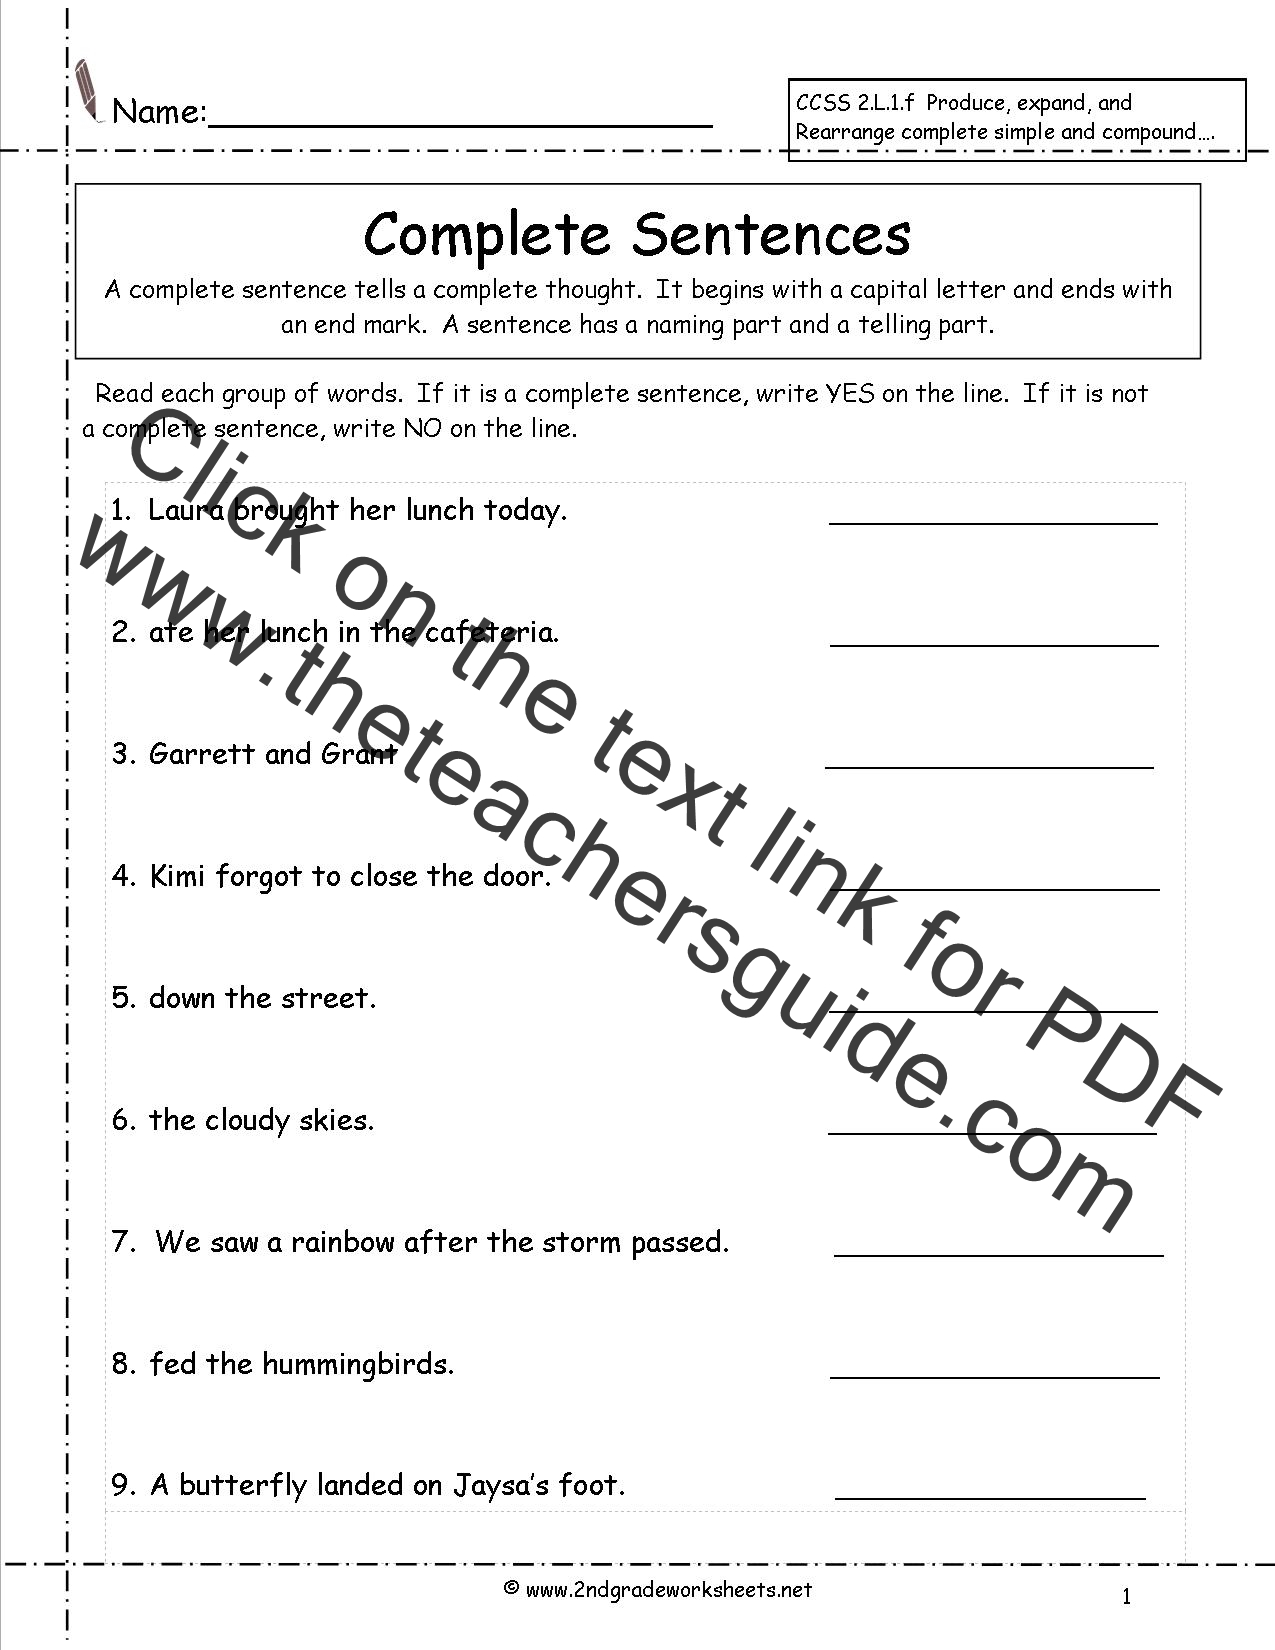 Printables Correct The Sentence Worksheet second grade sentences worksheets ccss 2 l 1 f complete worksheets